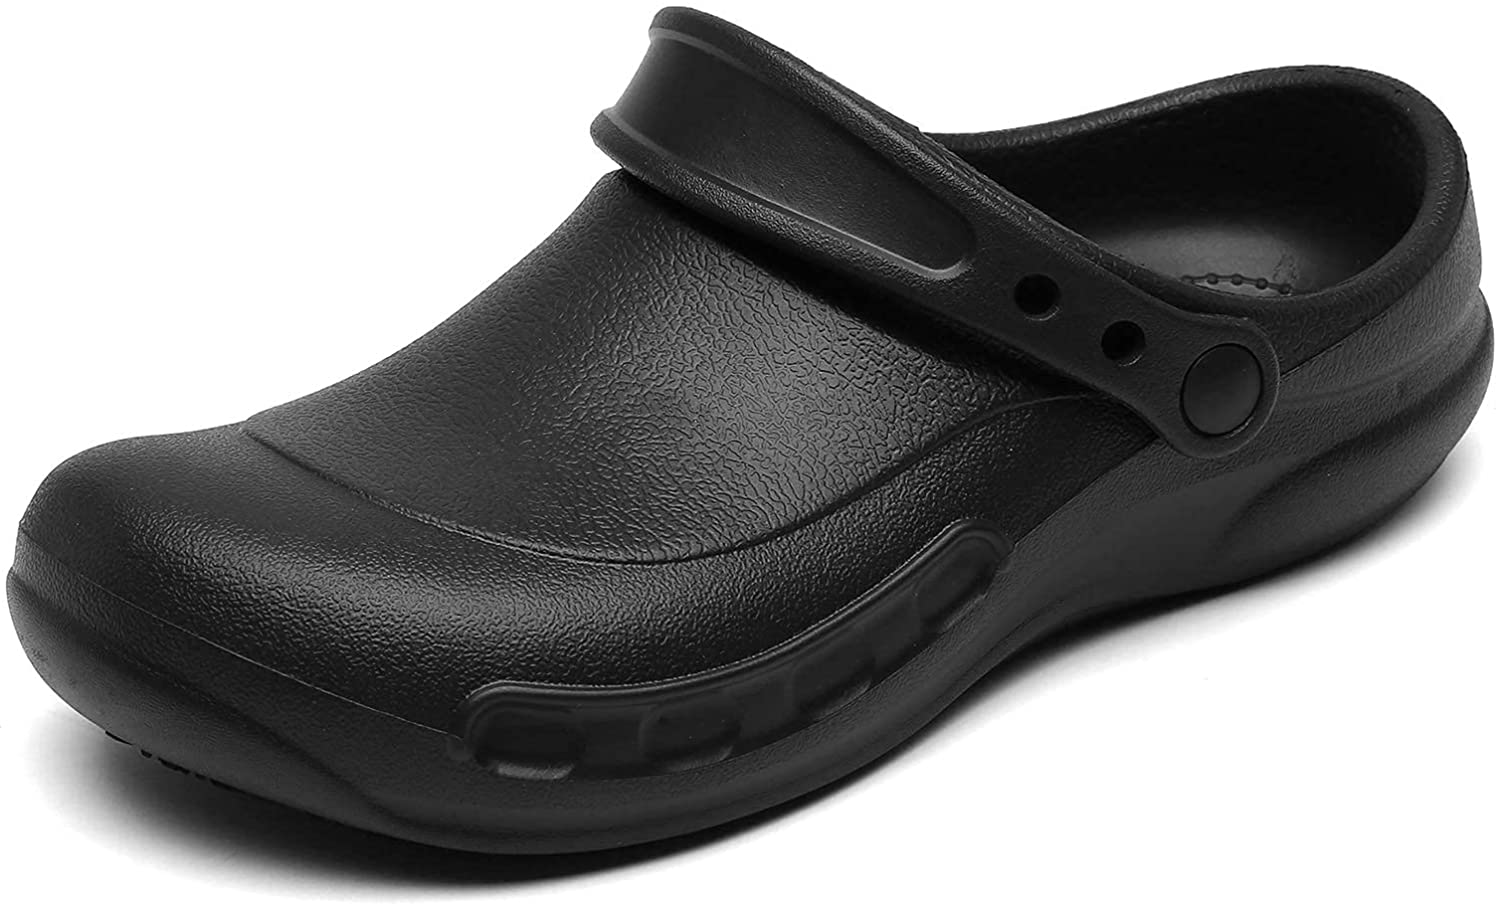 JSWEI Non Max 67% OFF Slip Shoes for Men Oil Resistant Chef Import Nursing Water -